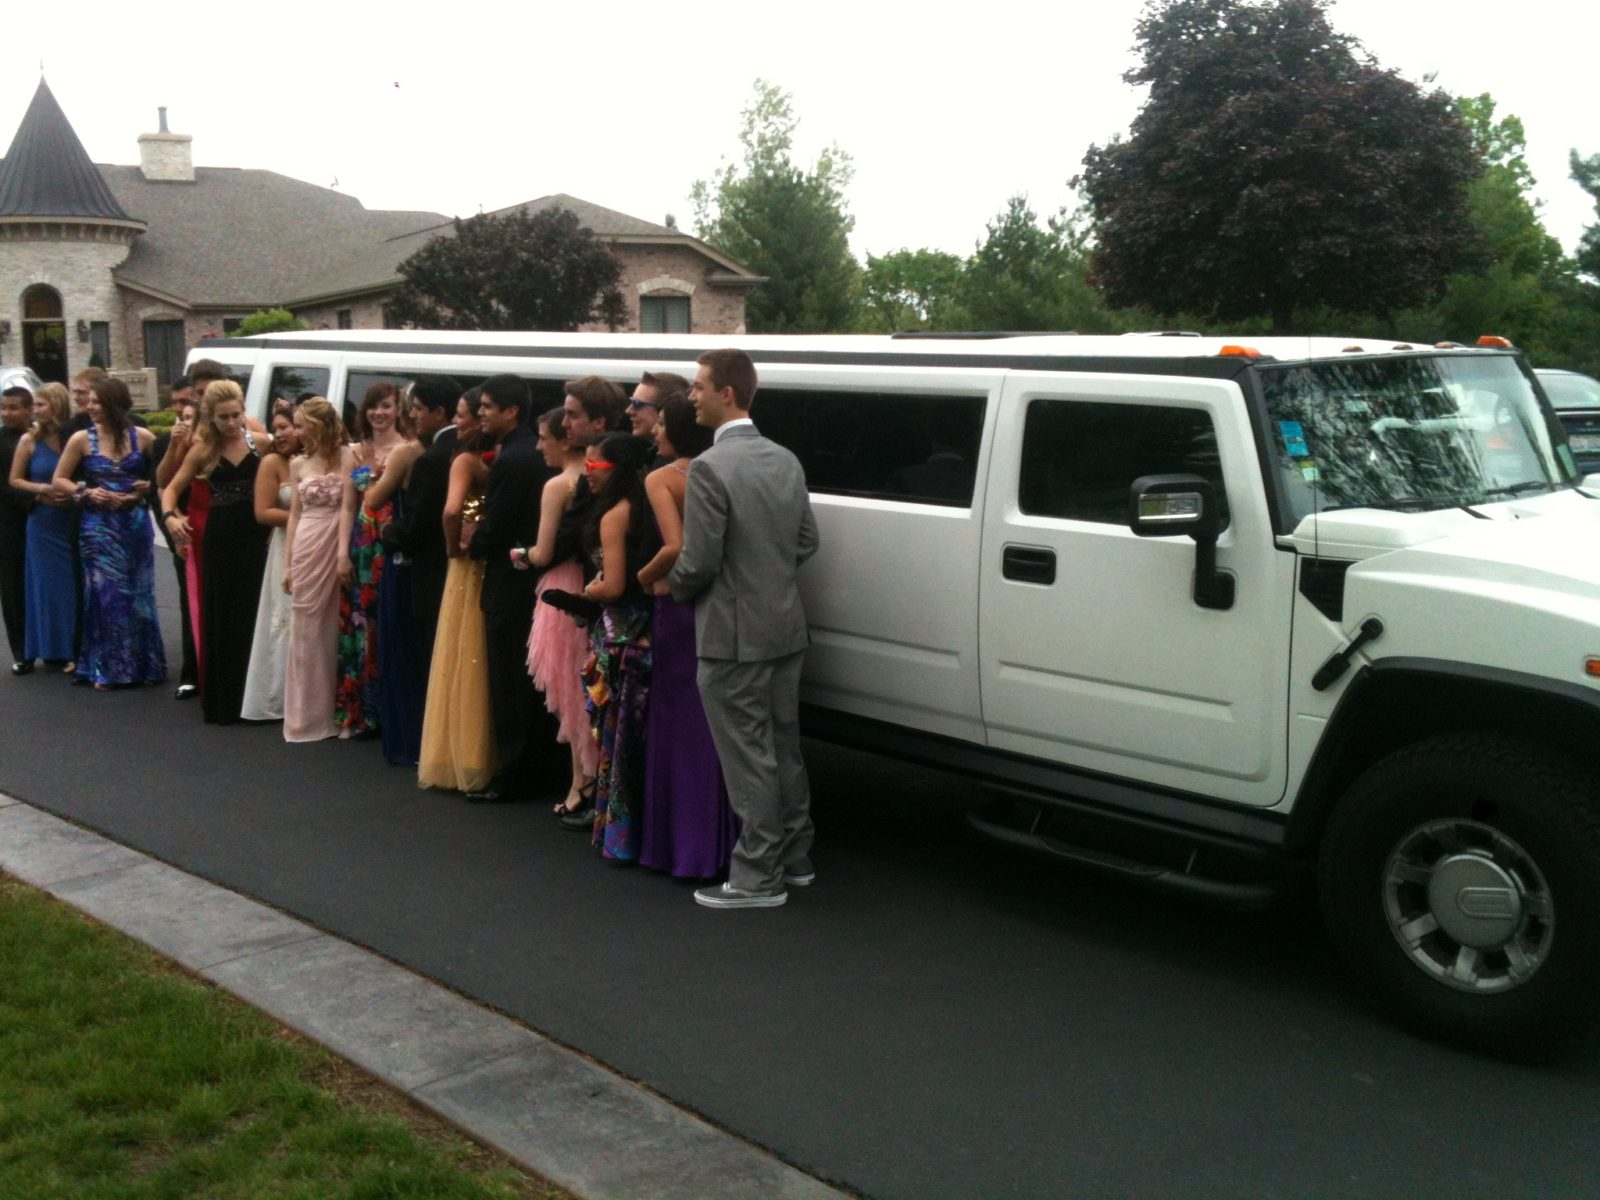 Limo Prom Rent A Limo For Prom Things To Consider 1st Class Transportation